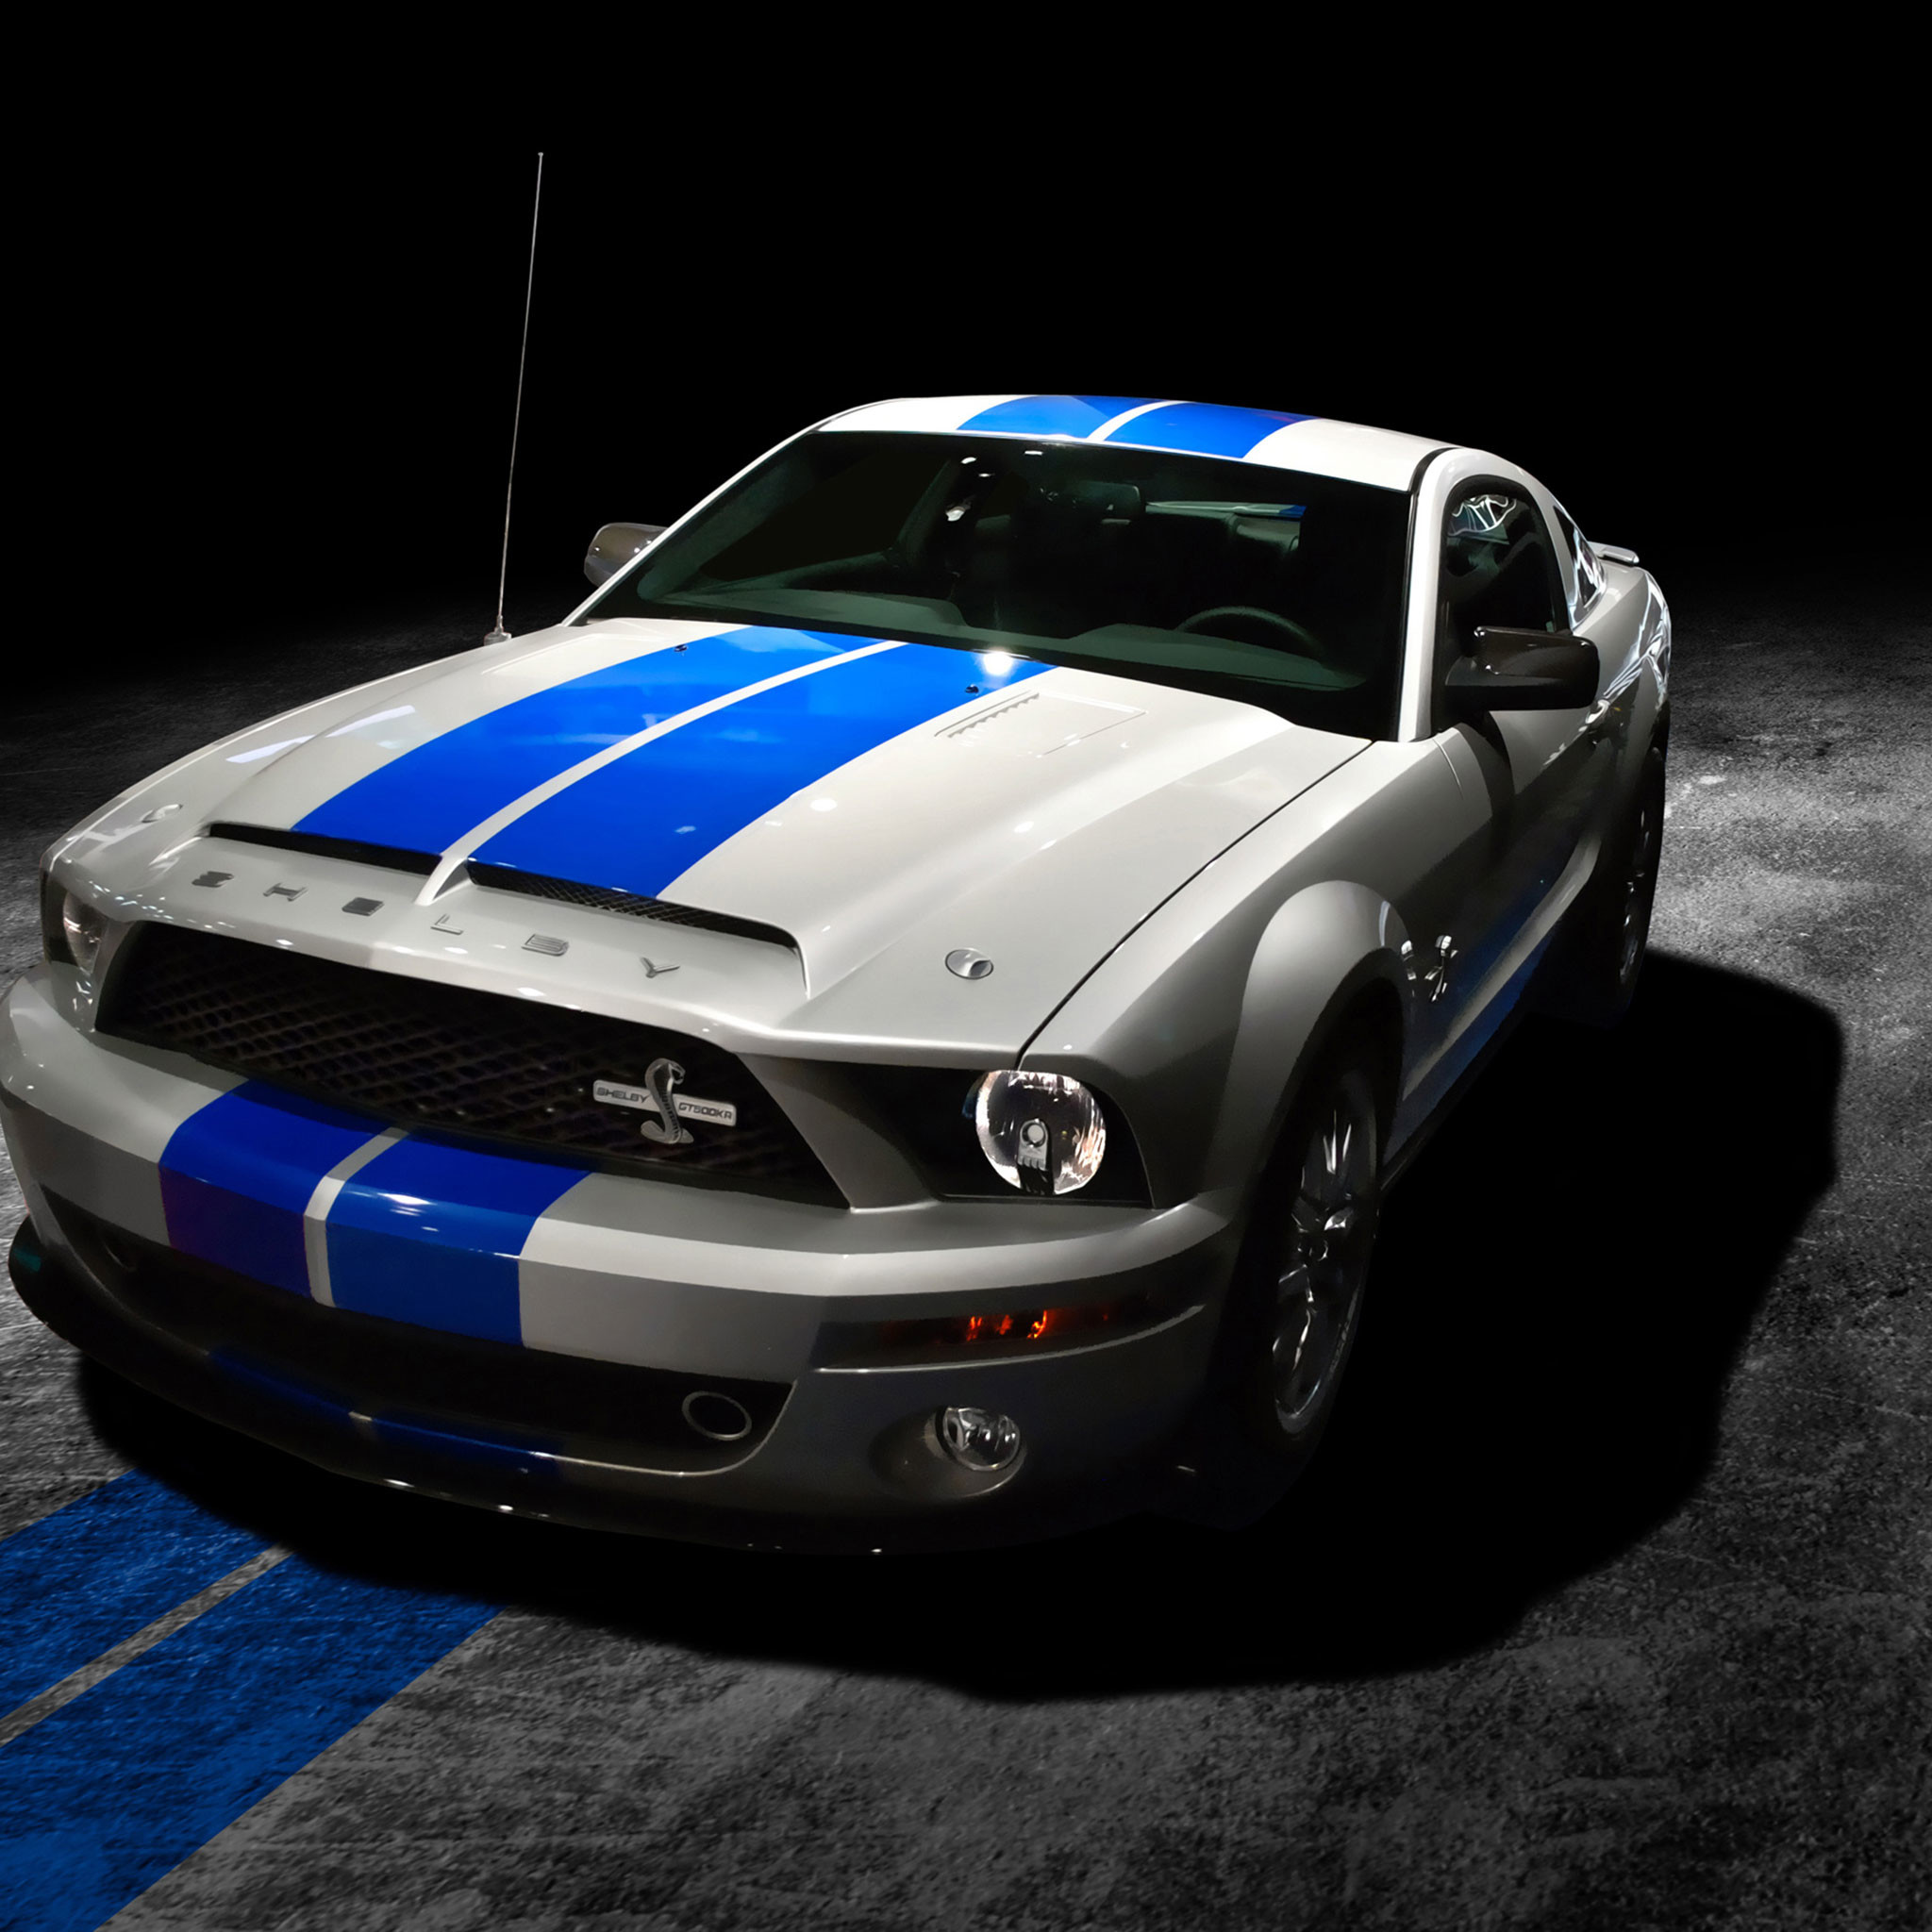 Cool Car Wallpapers For Ipad: Cool Cars Wallpapers (69+ Pictures